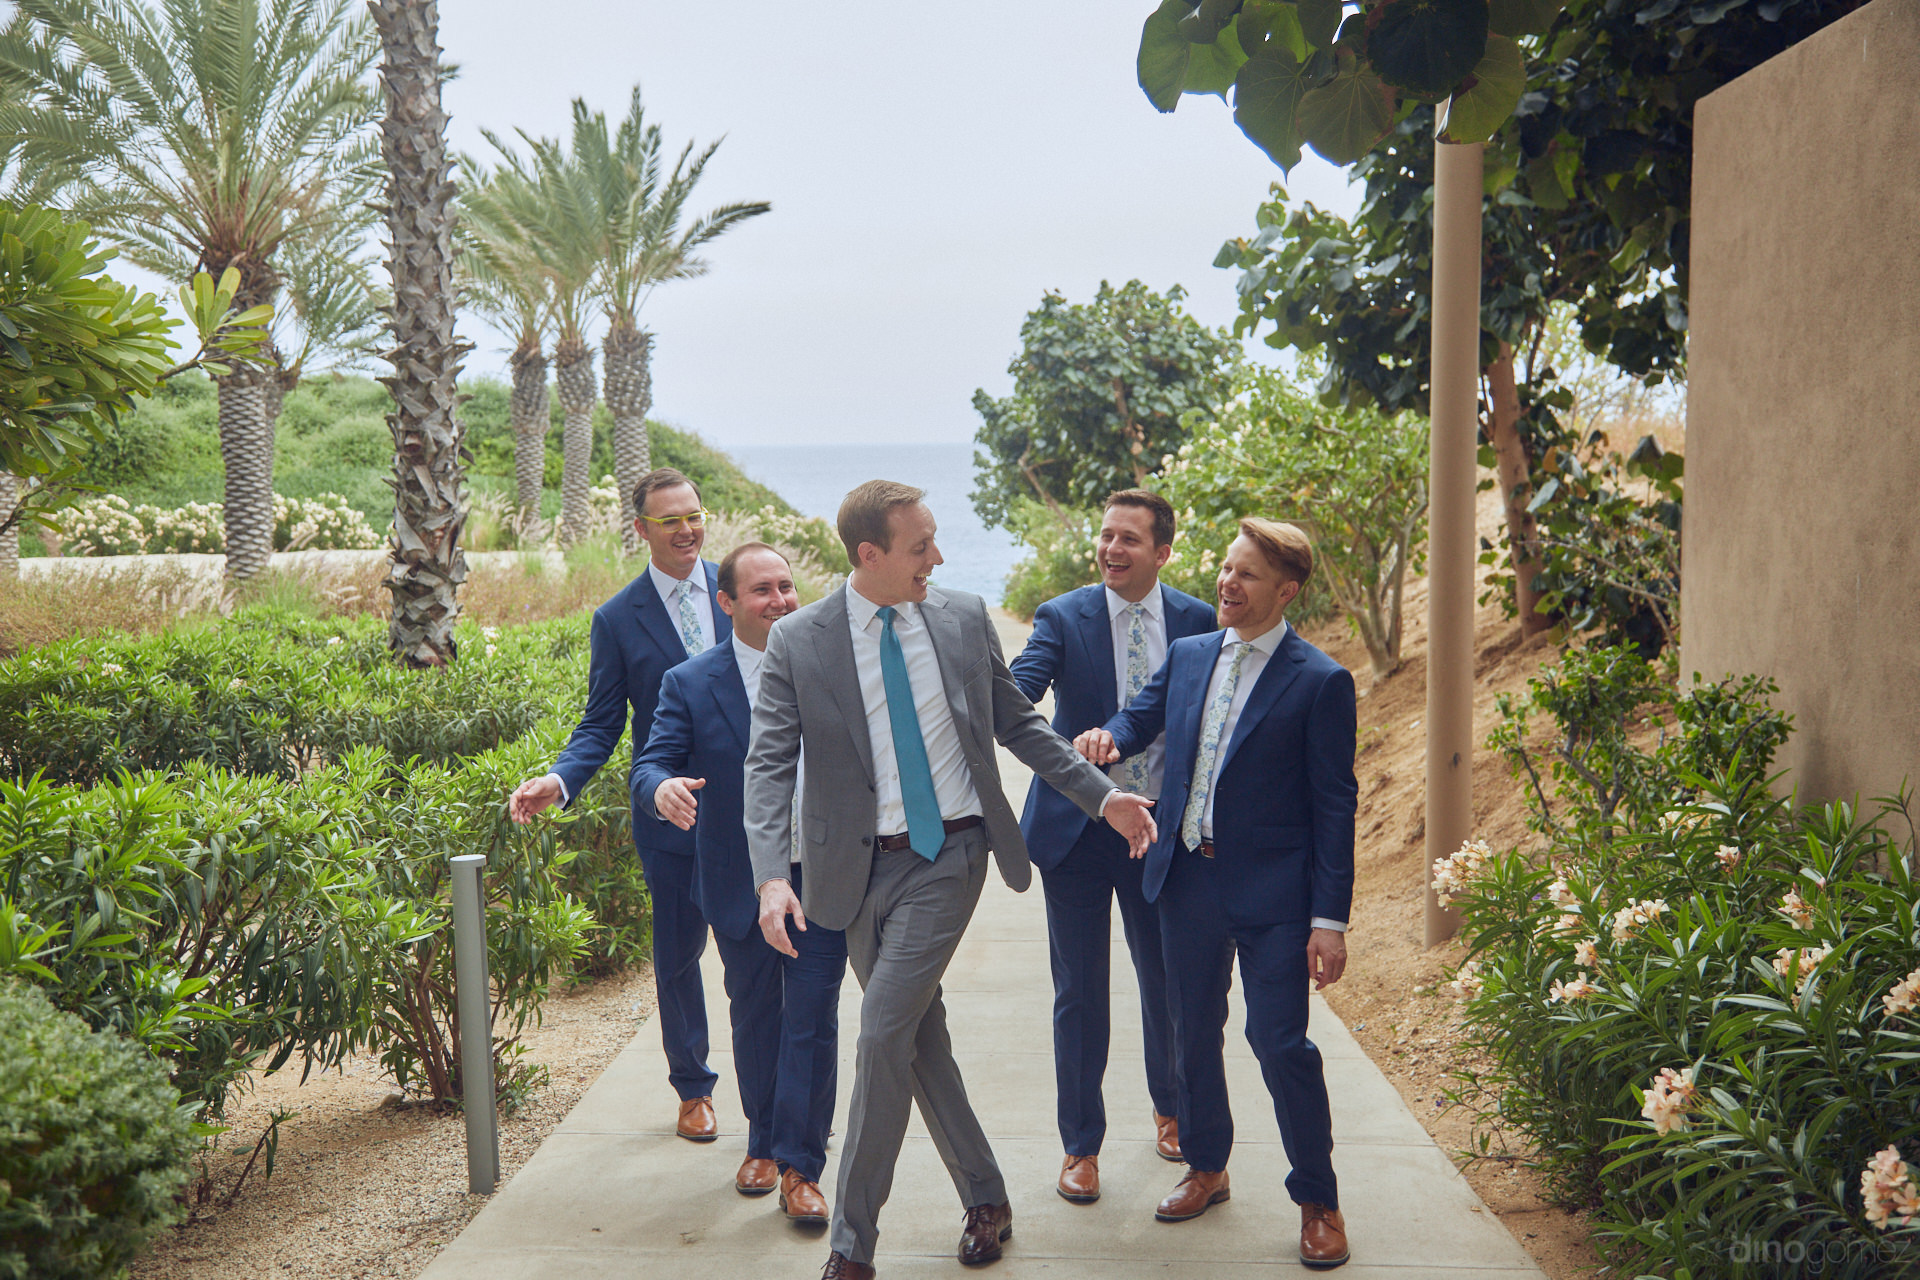 Candid Wedding Photographers In Los Cabos - Hilary & Bryan Flora Wedding